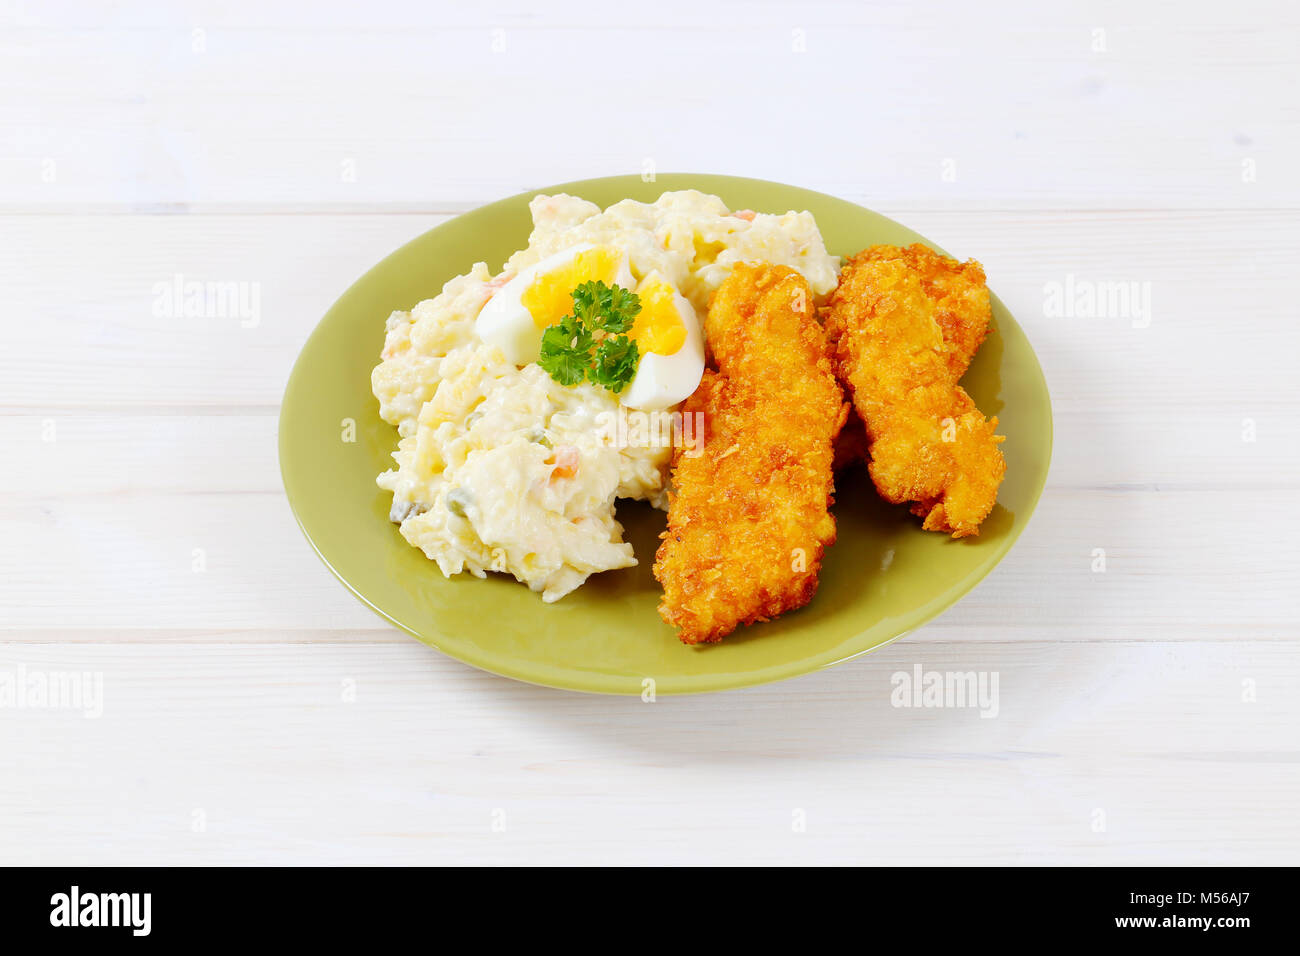 chicken schnitzels with potato salad on green plate Stock Photo